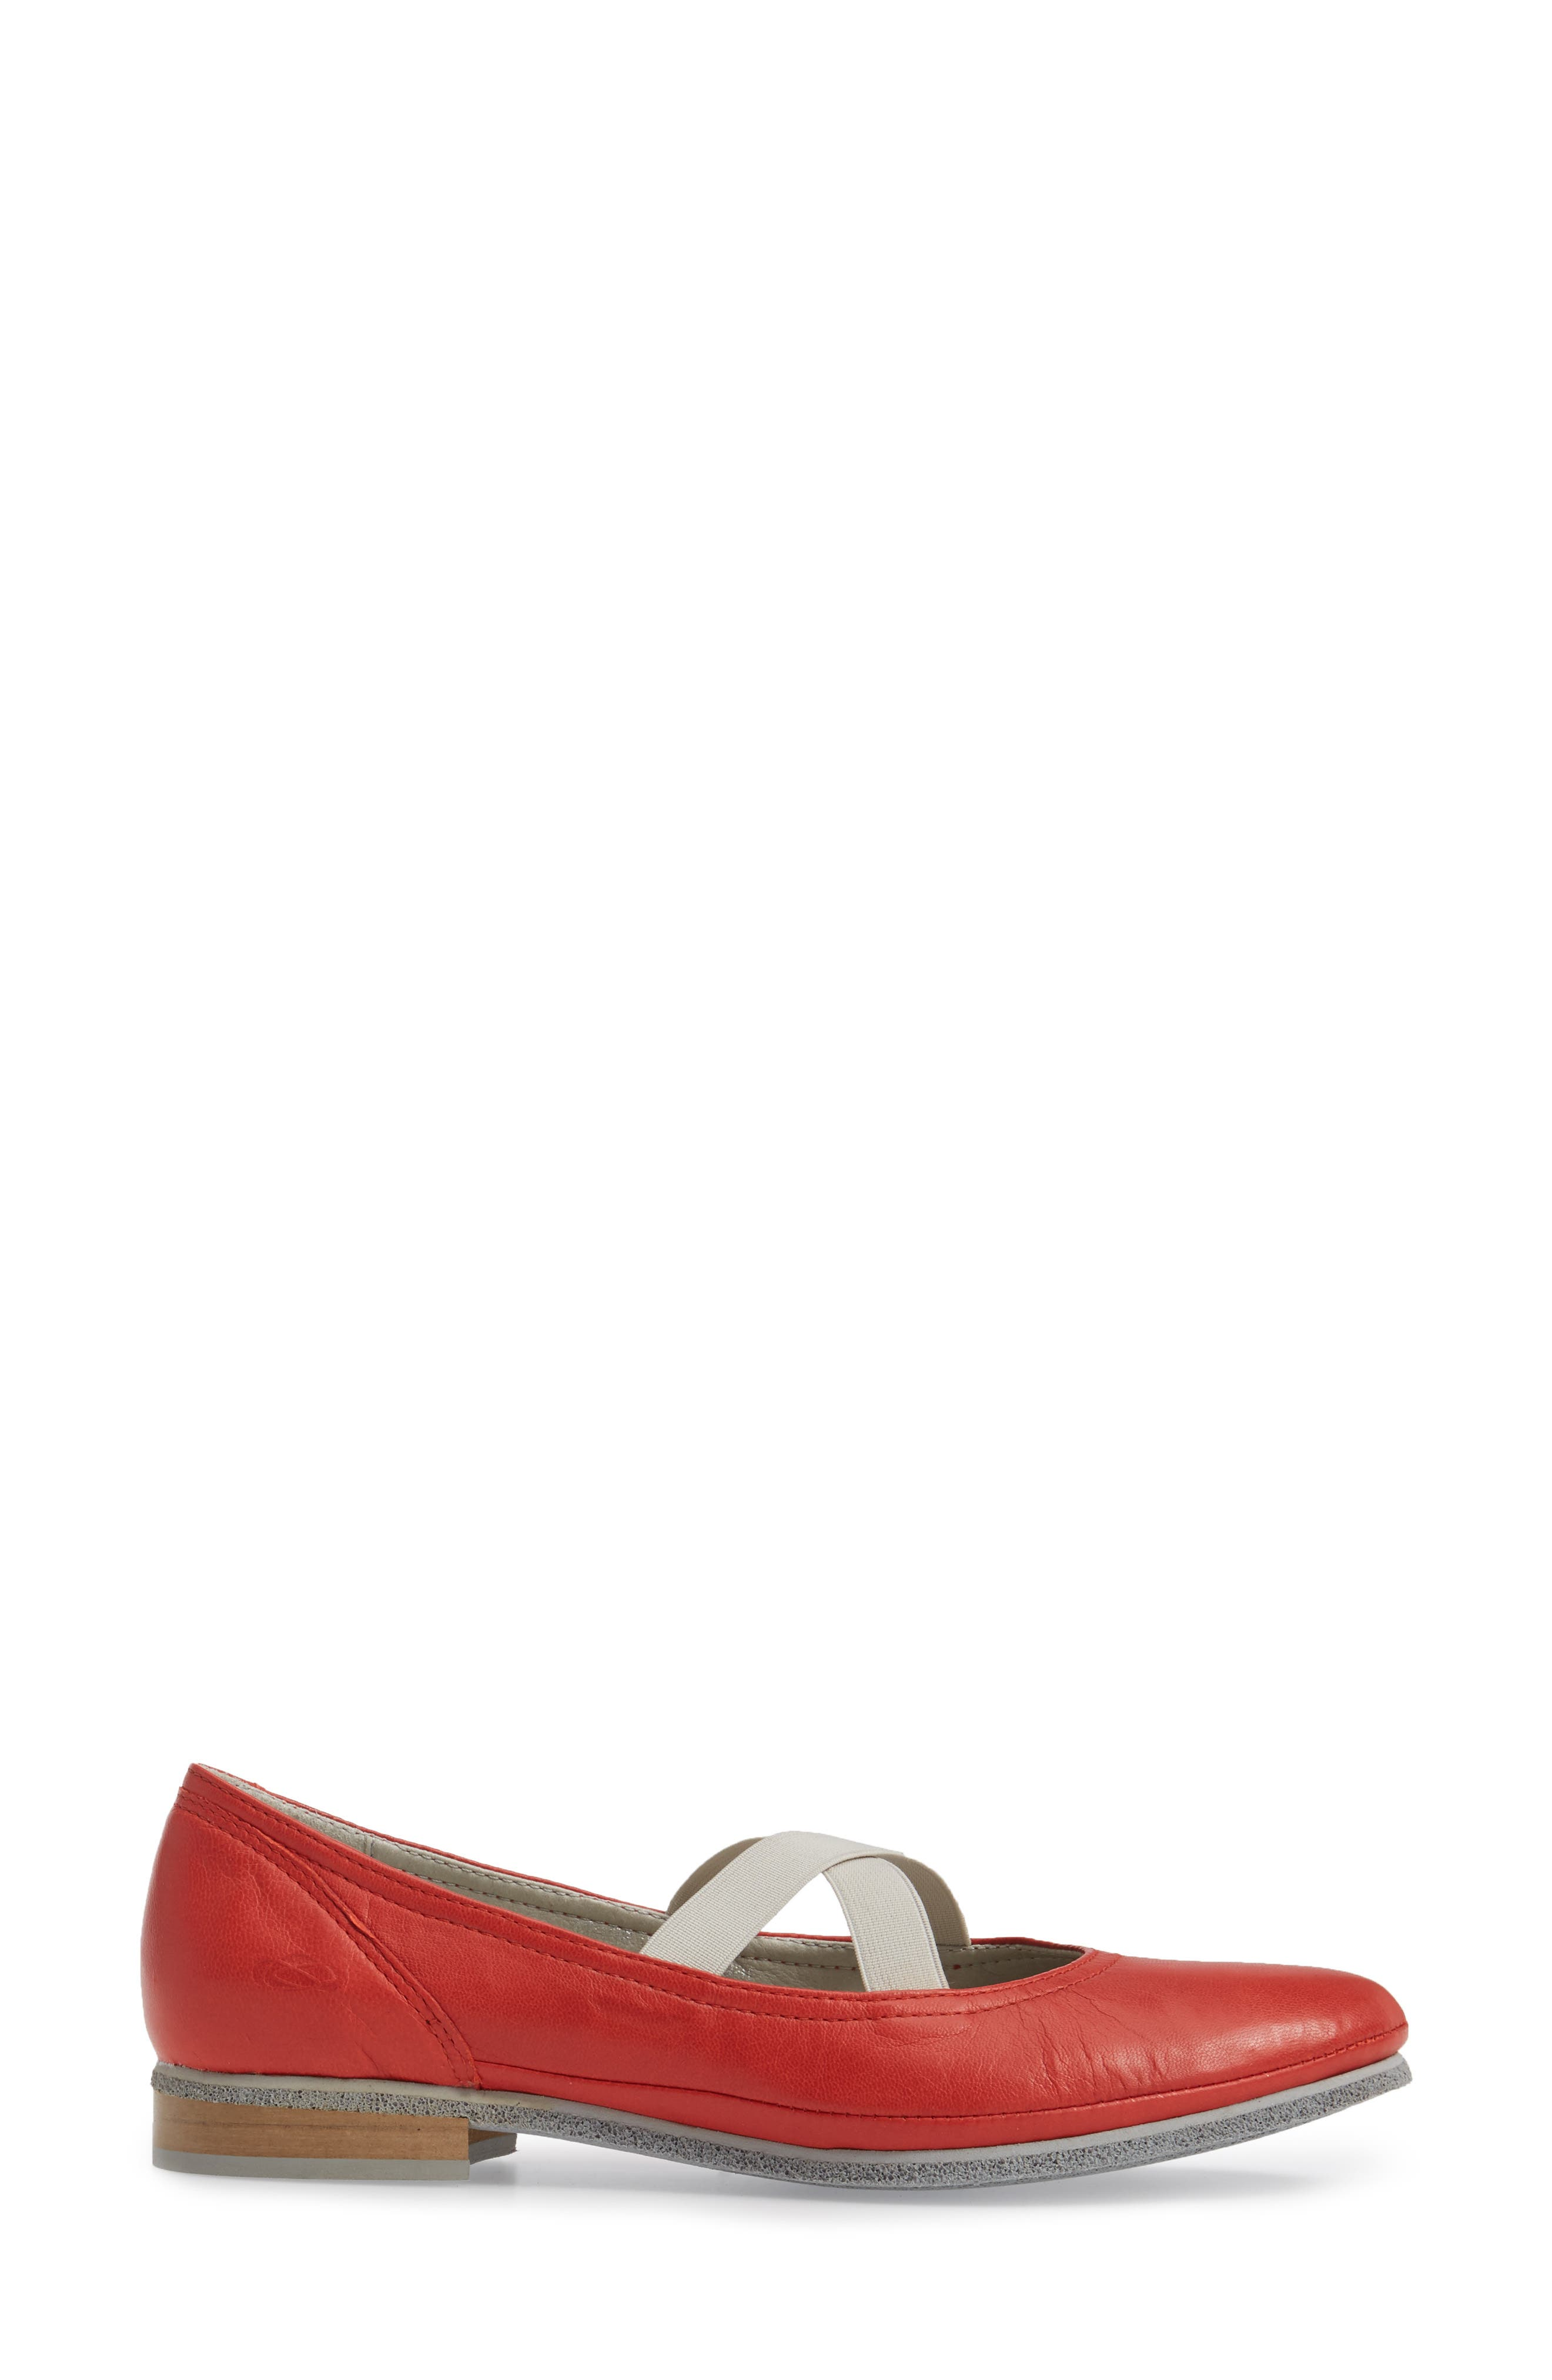 Ballet Strappy Flat,                             Alternate thumbnail 3, color,                             Red Leather